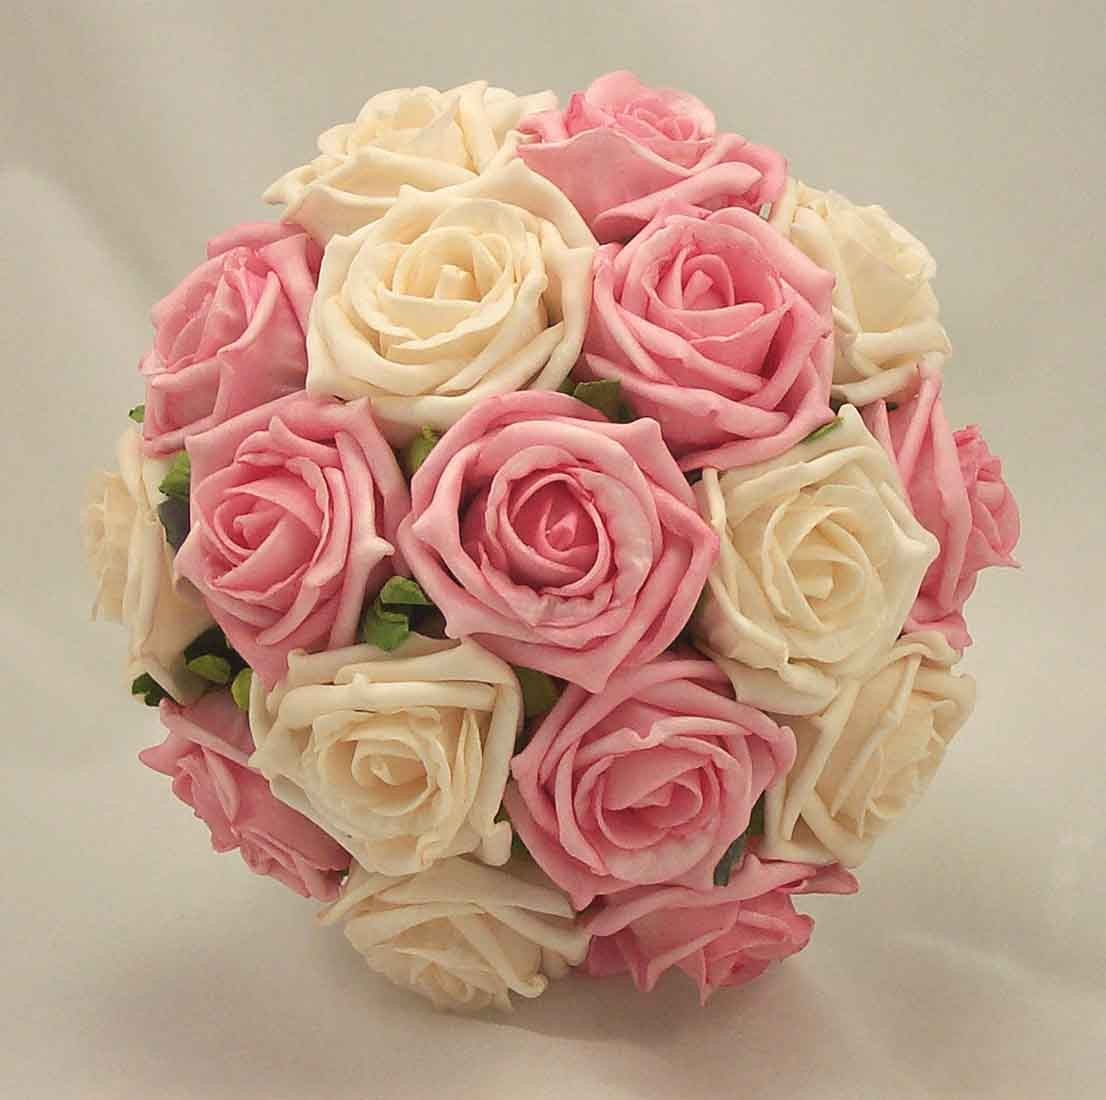 Pink Wedding Flowers: Pink & Cream Rose Bridal Bouquet